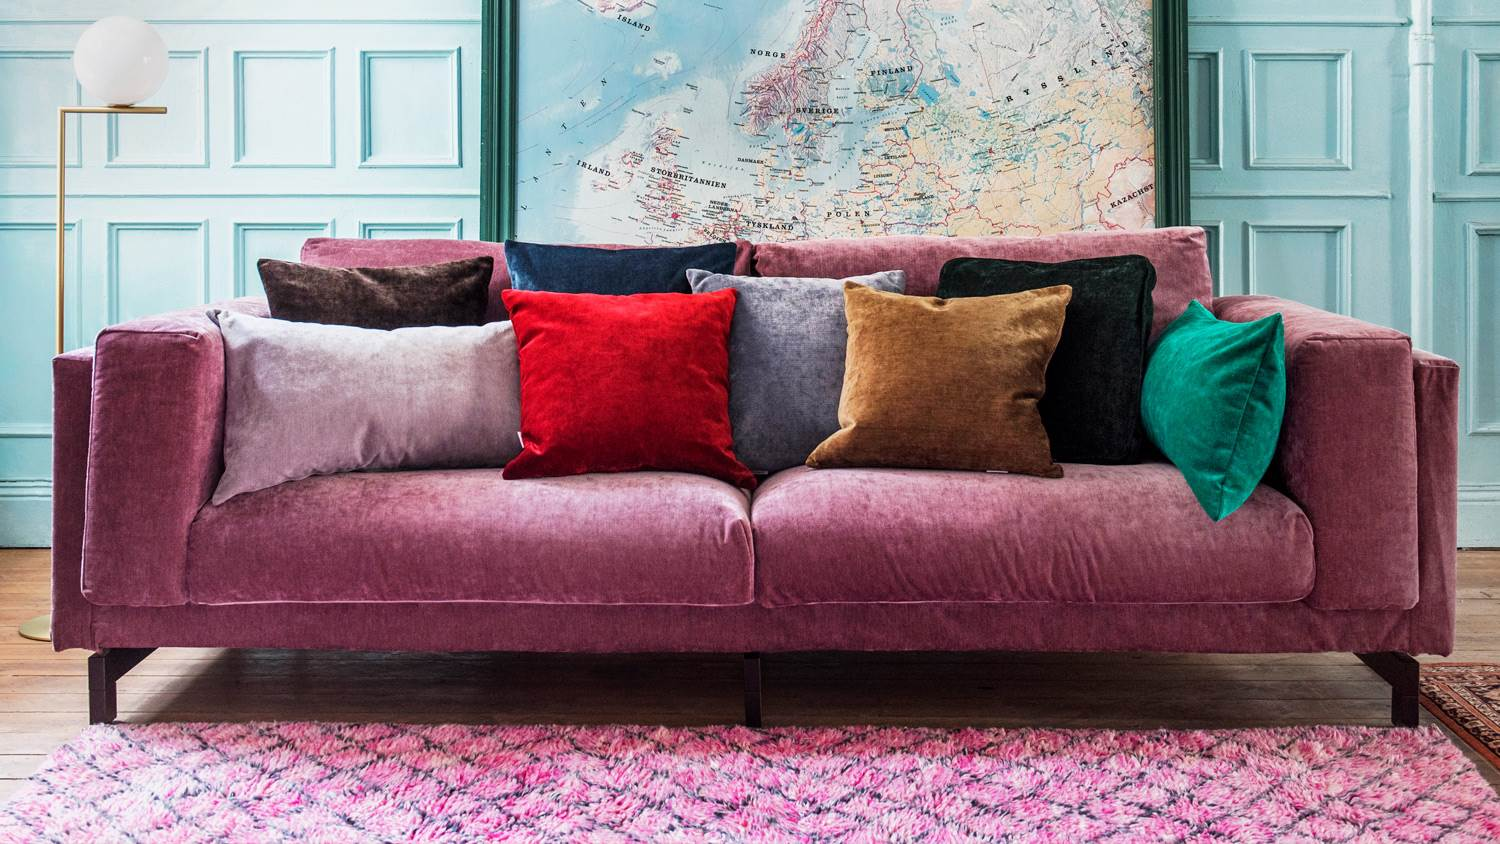 The Best Modern Slipcovers A Stylish Shopping Guide Apartment Therapy